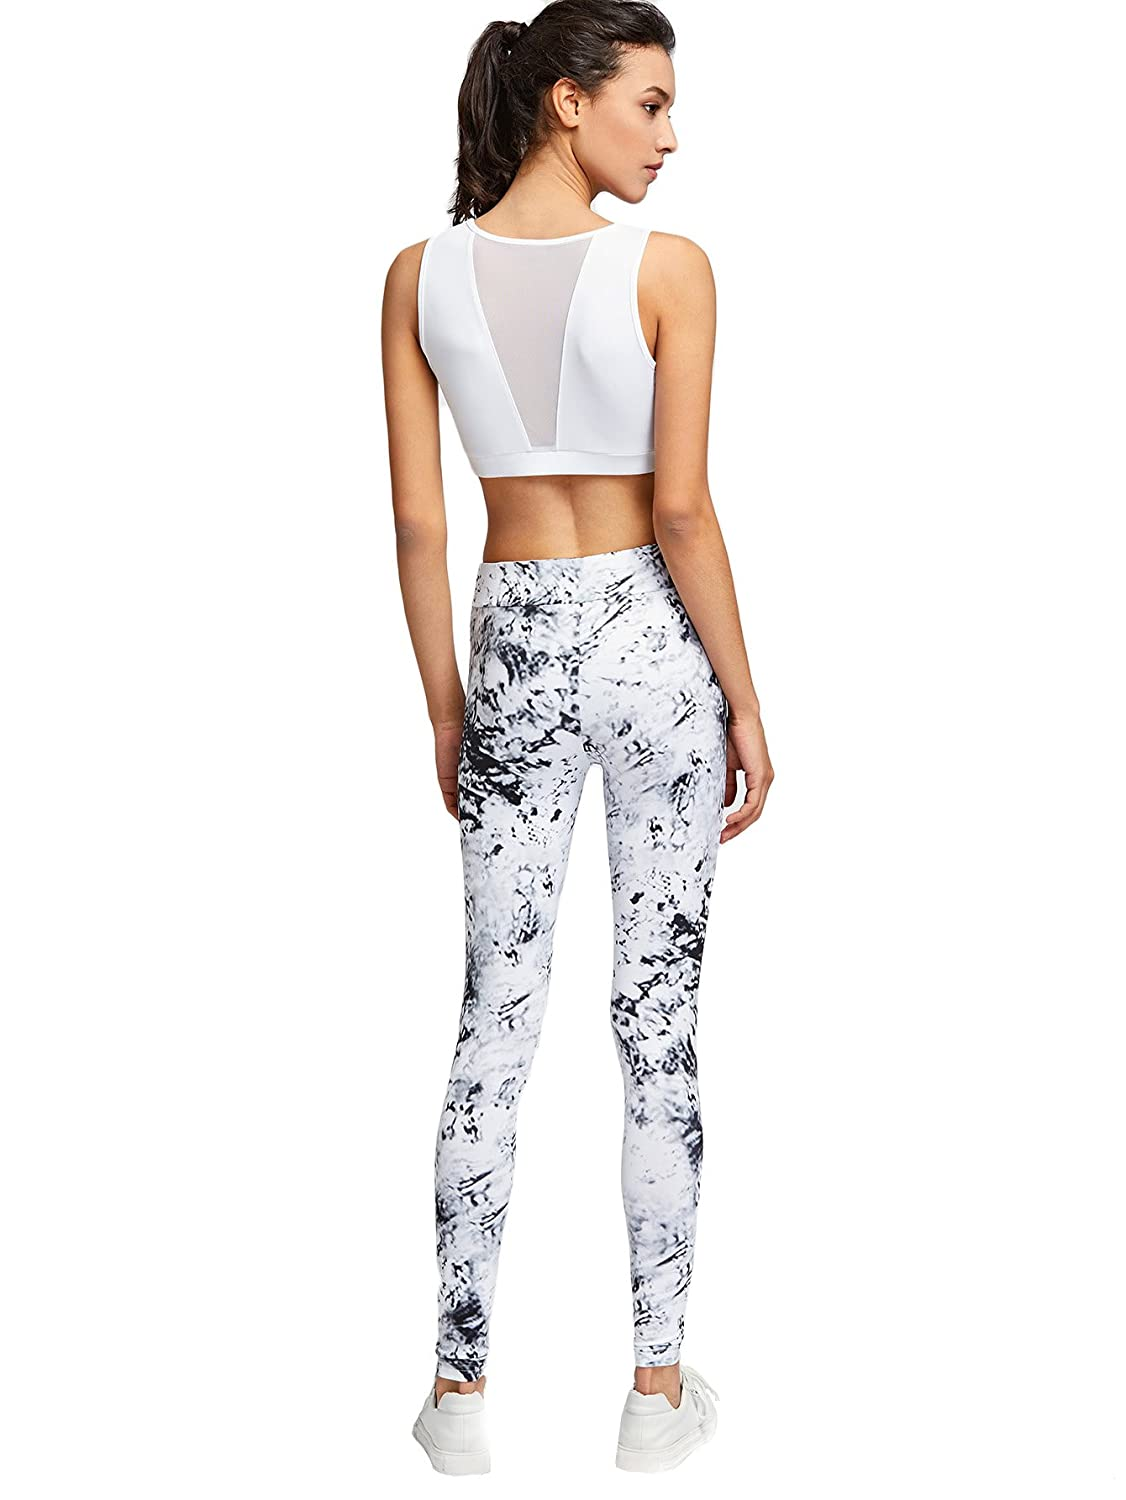 f0b1d0790 SweatyRocks Women's Sport Bodycon 2 Piece Outfit Crop Top Long Skinny Pant  Set Tracksuit Multicolor S at Amazon Women's Clothing store: